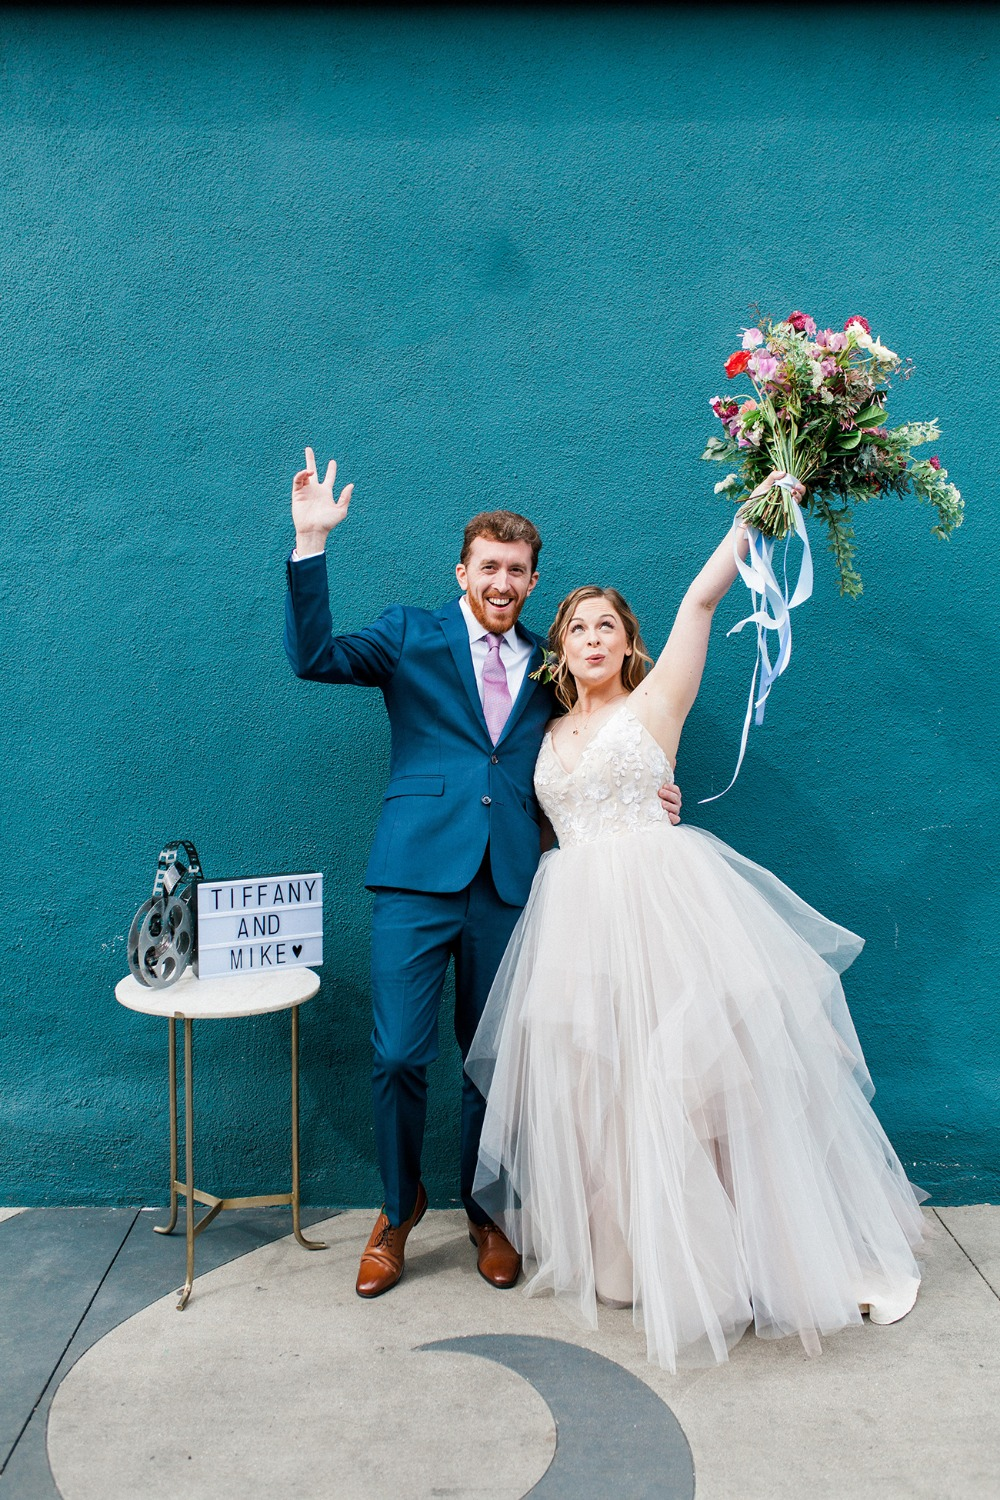 Fun and colorful modern wedding